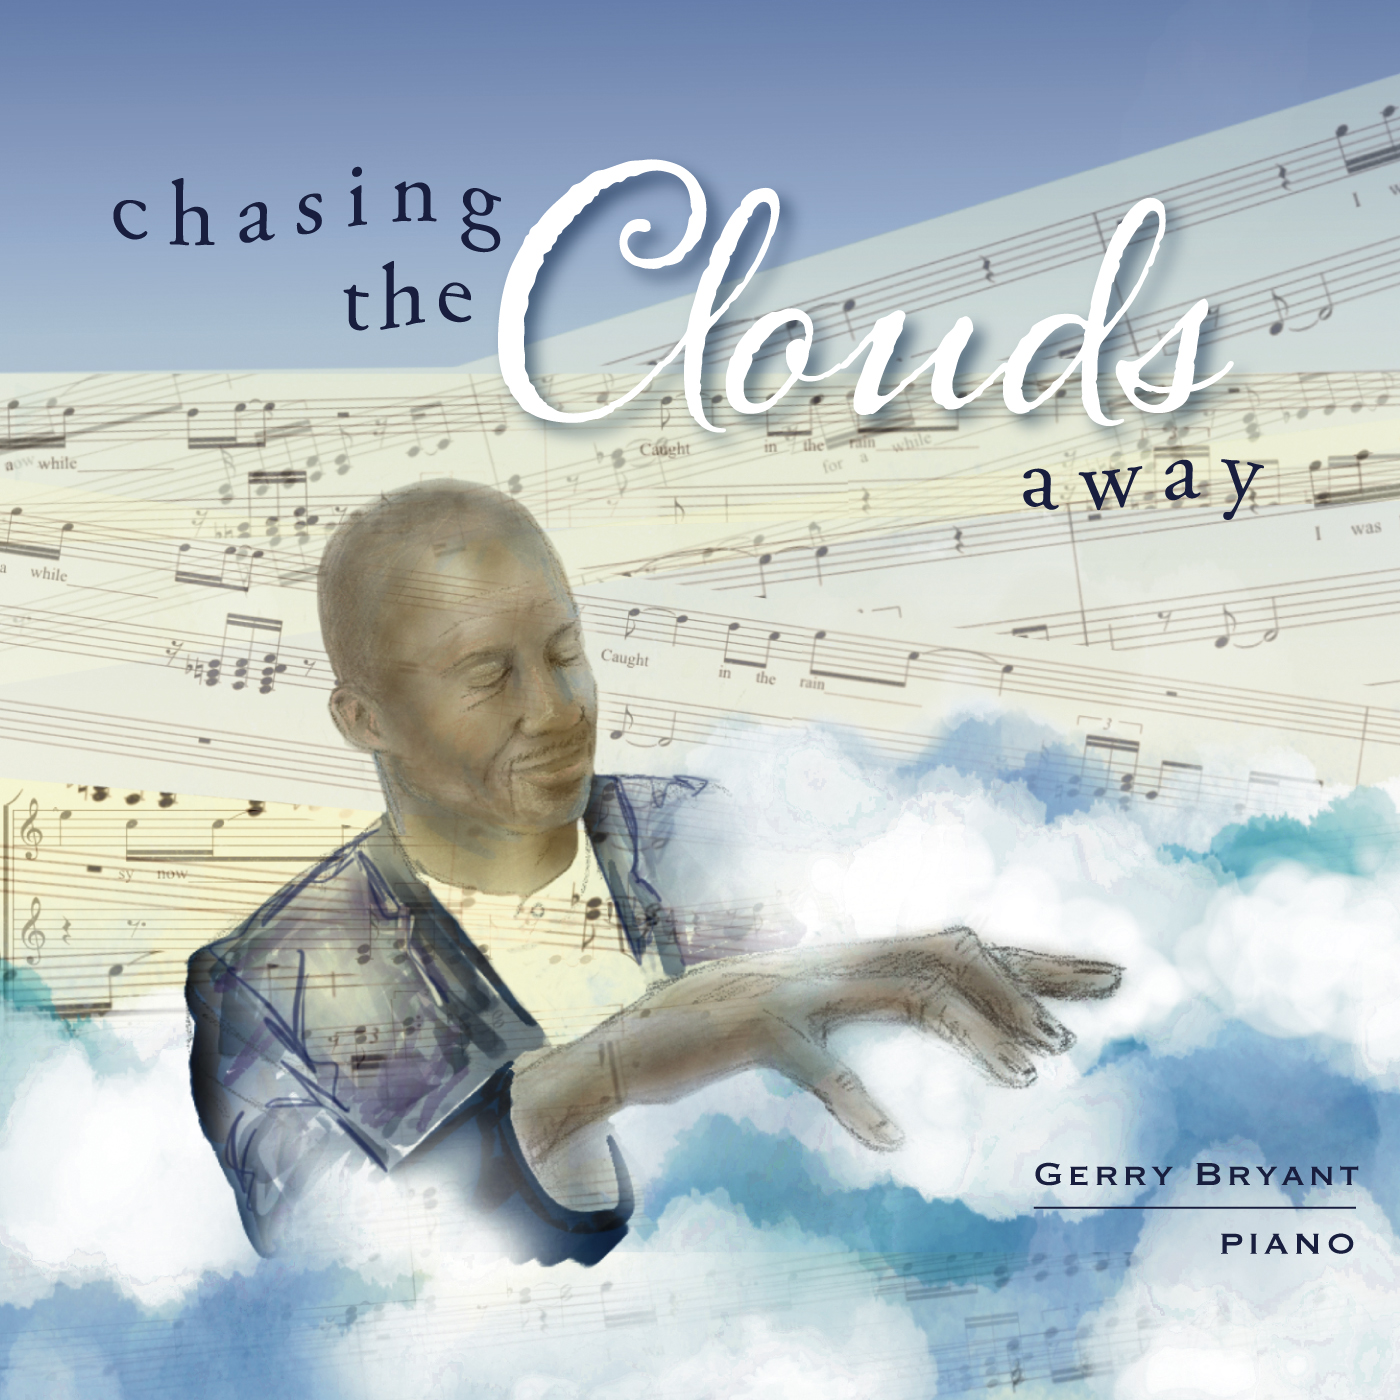 Chasing the Clouds Away CD cover